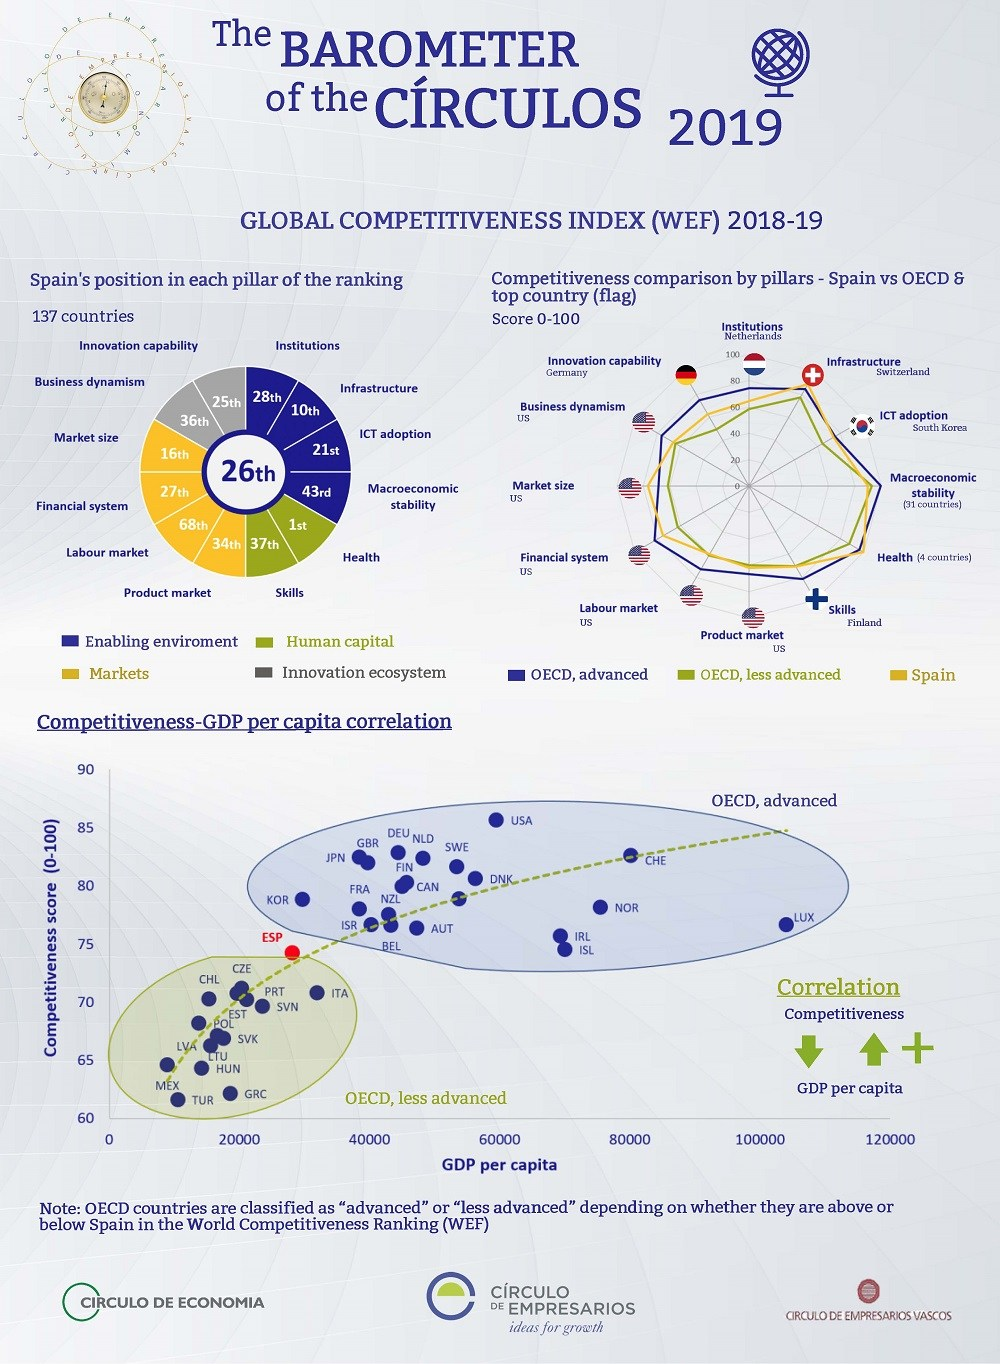 Global Competitiveness Index 2018-19 Barómetro de los Círculos Círculo de Empresarios